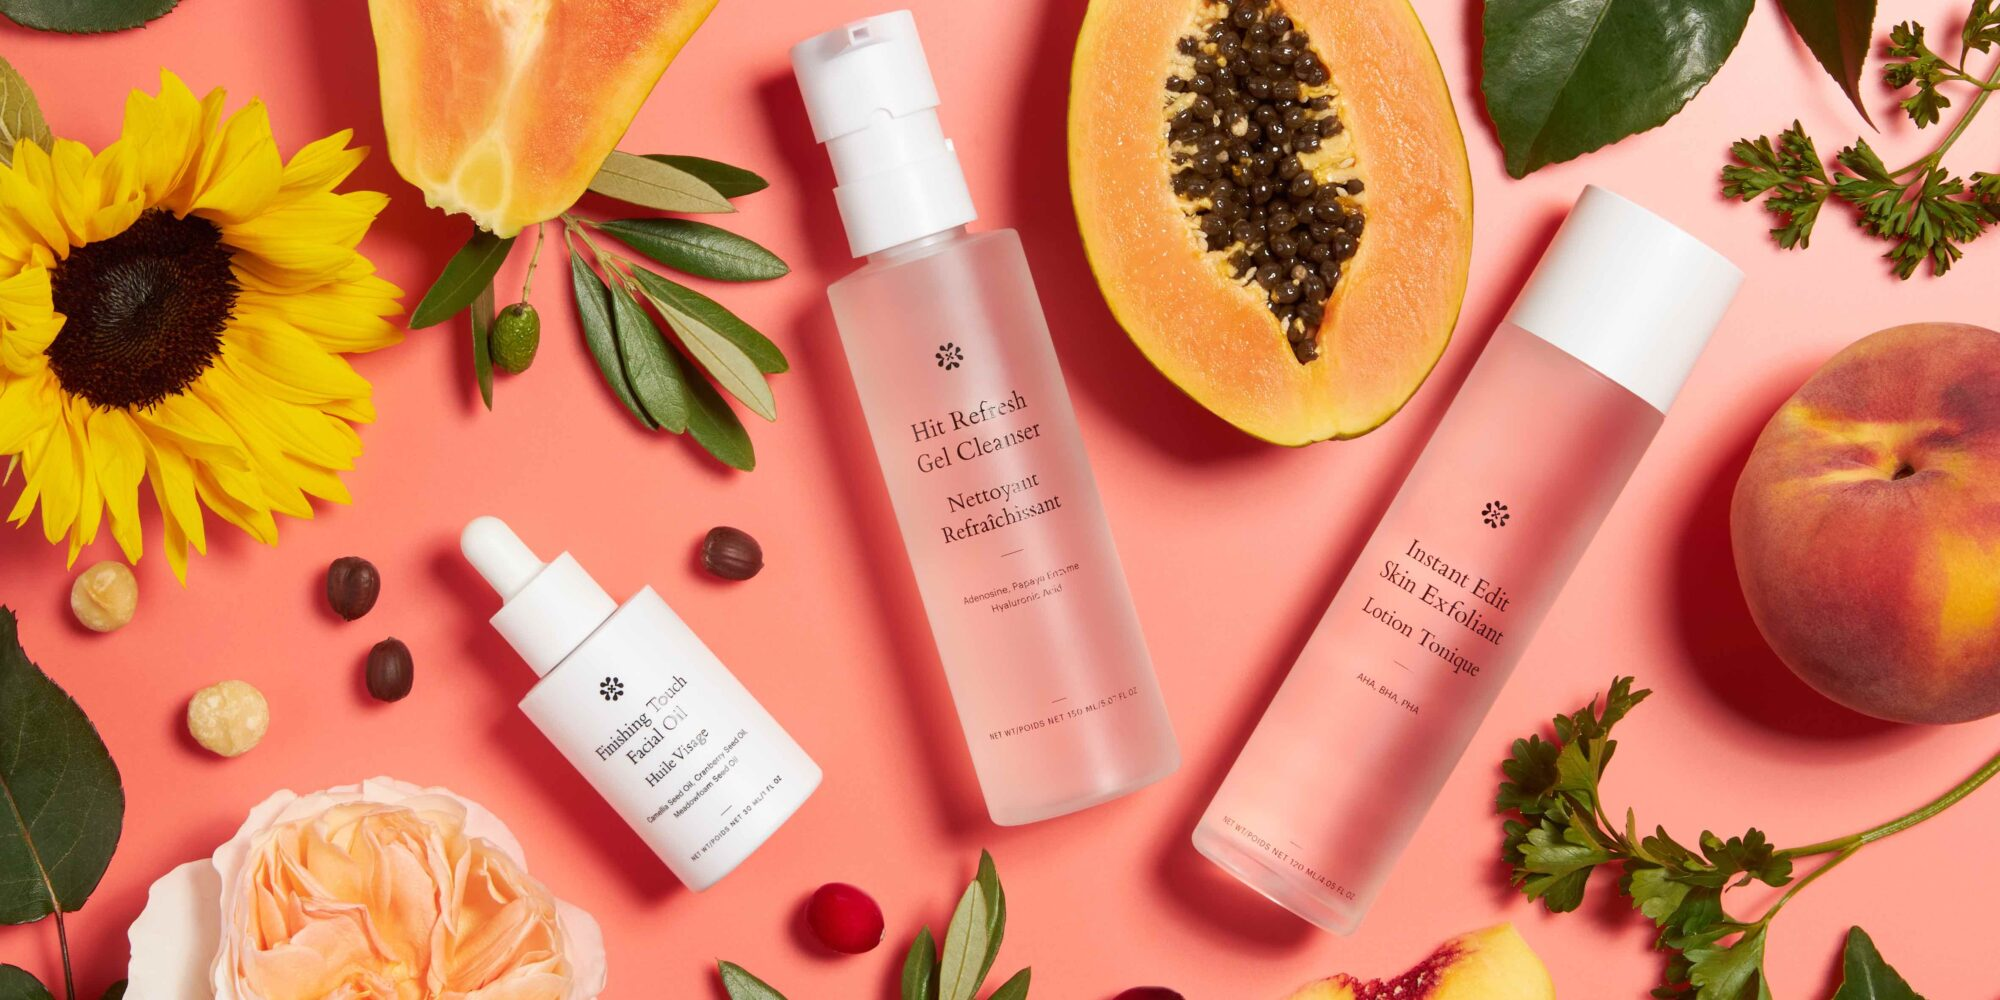 DTC Marketplace Italic Enters The Beauty Category To Increase Purchase Frequency And Basket Size